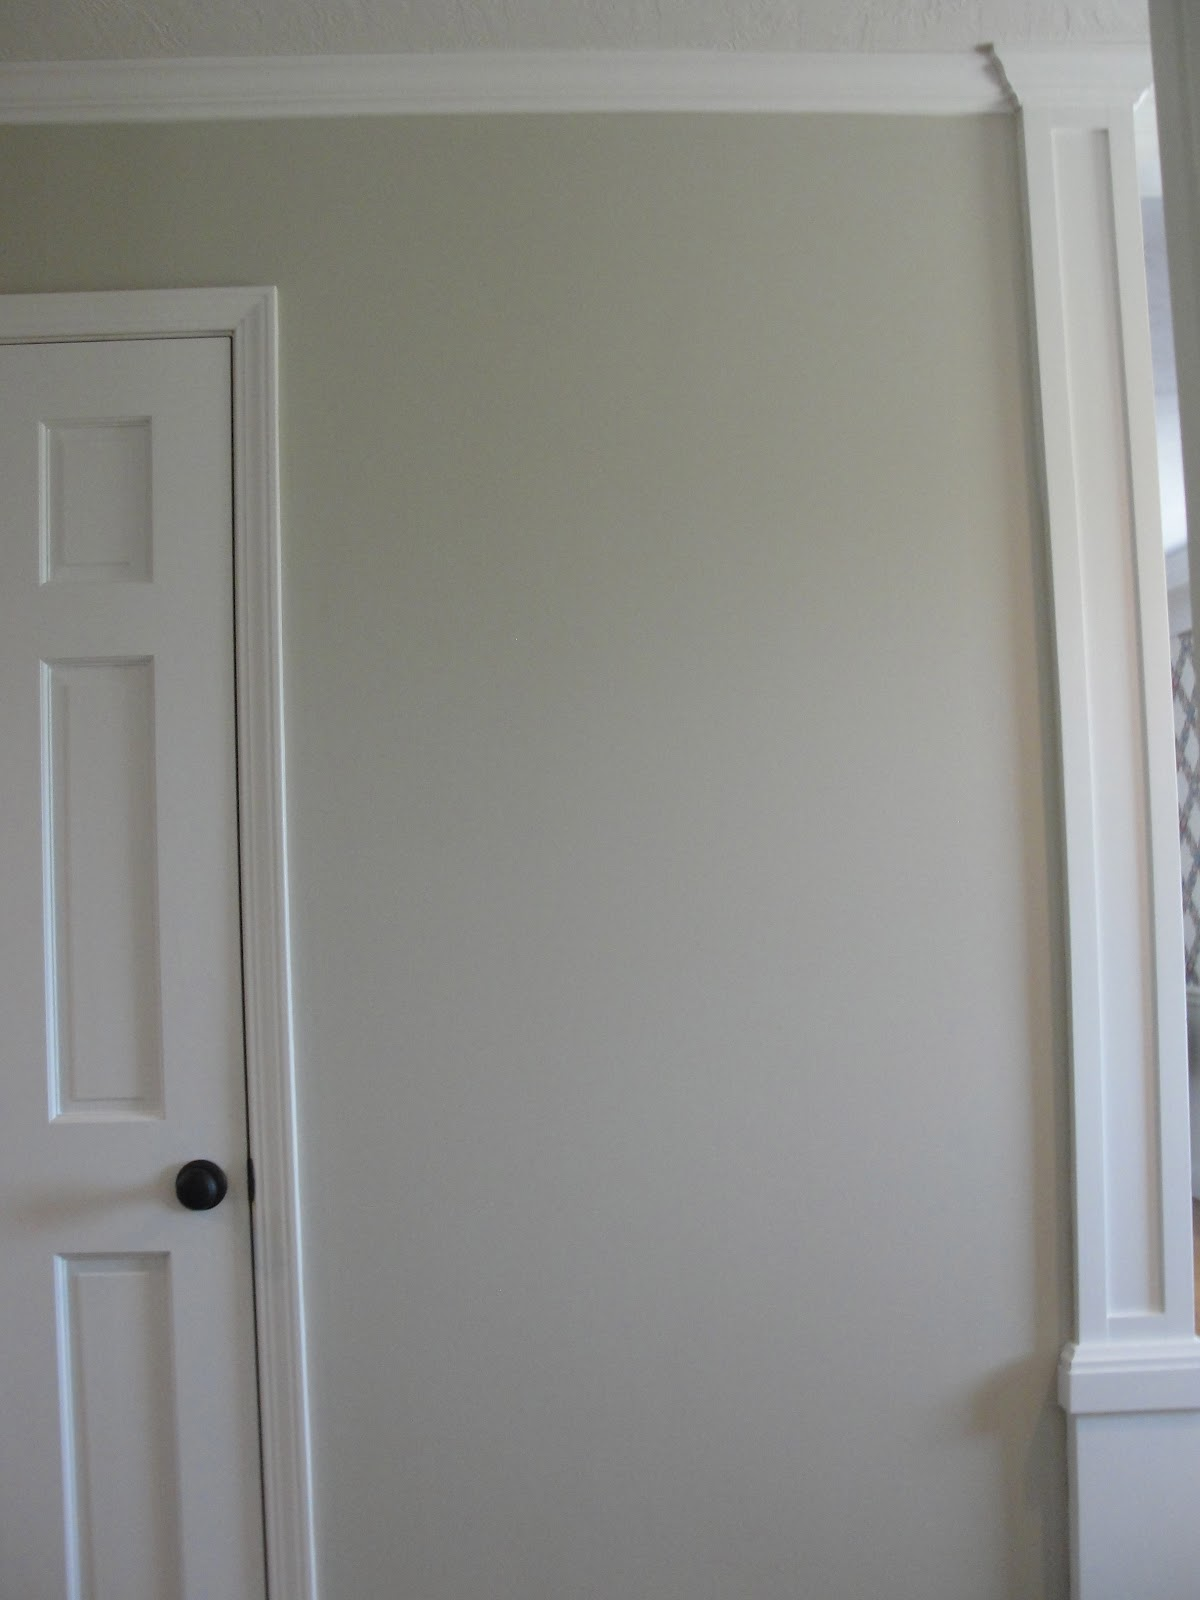 Sherwin williams aesthetic beige 2015 home design ideas for Manhattan beige paint color